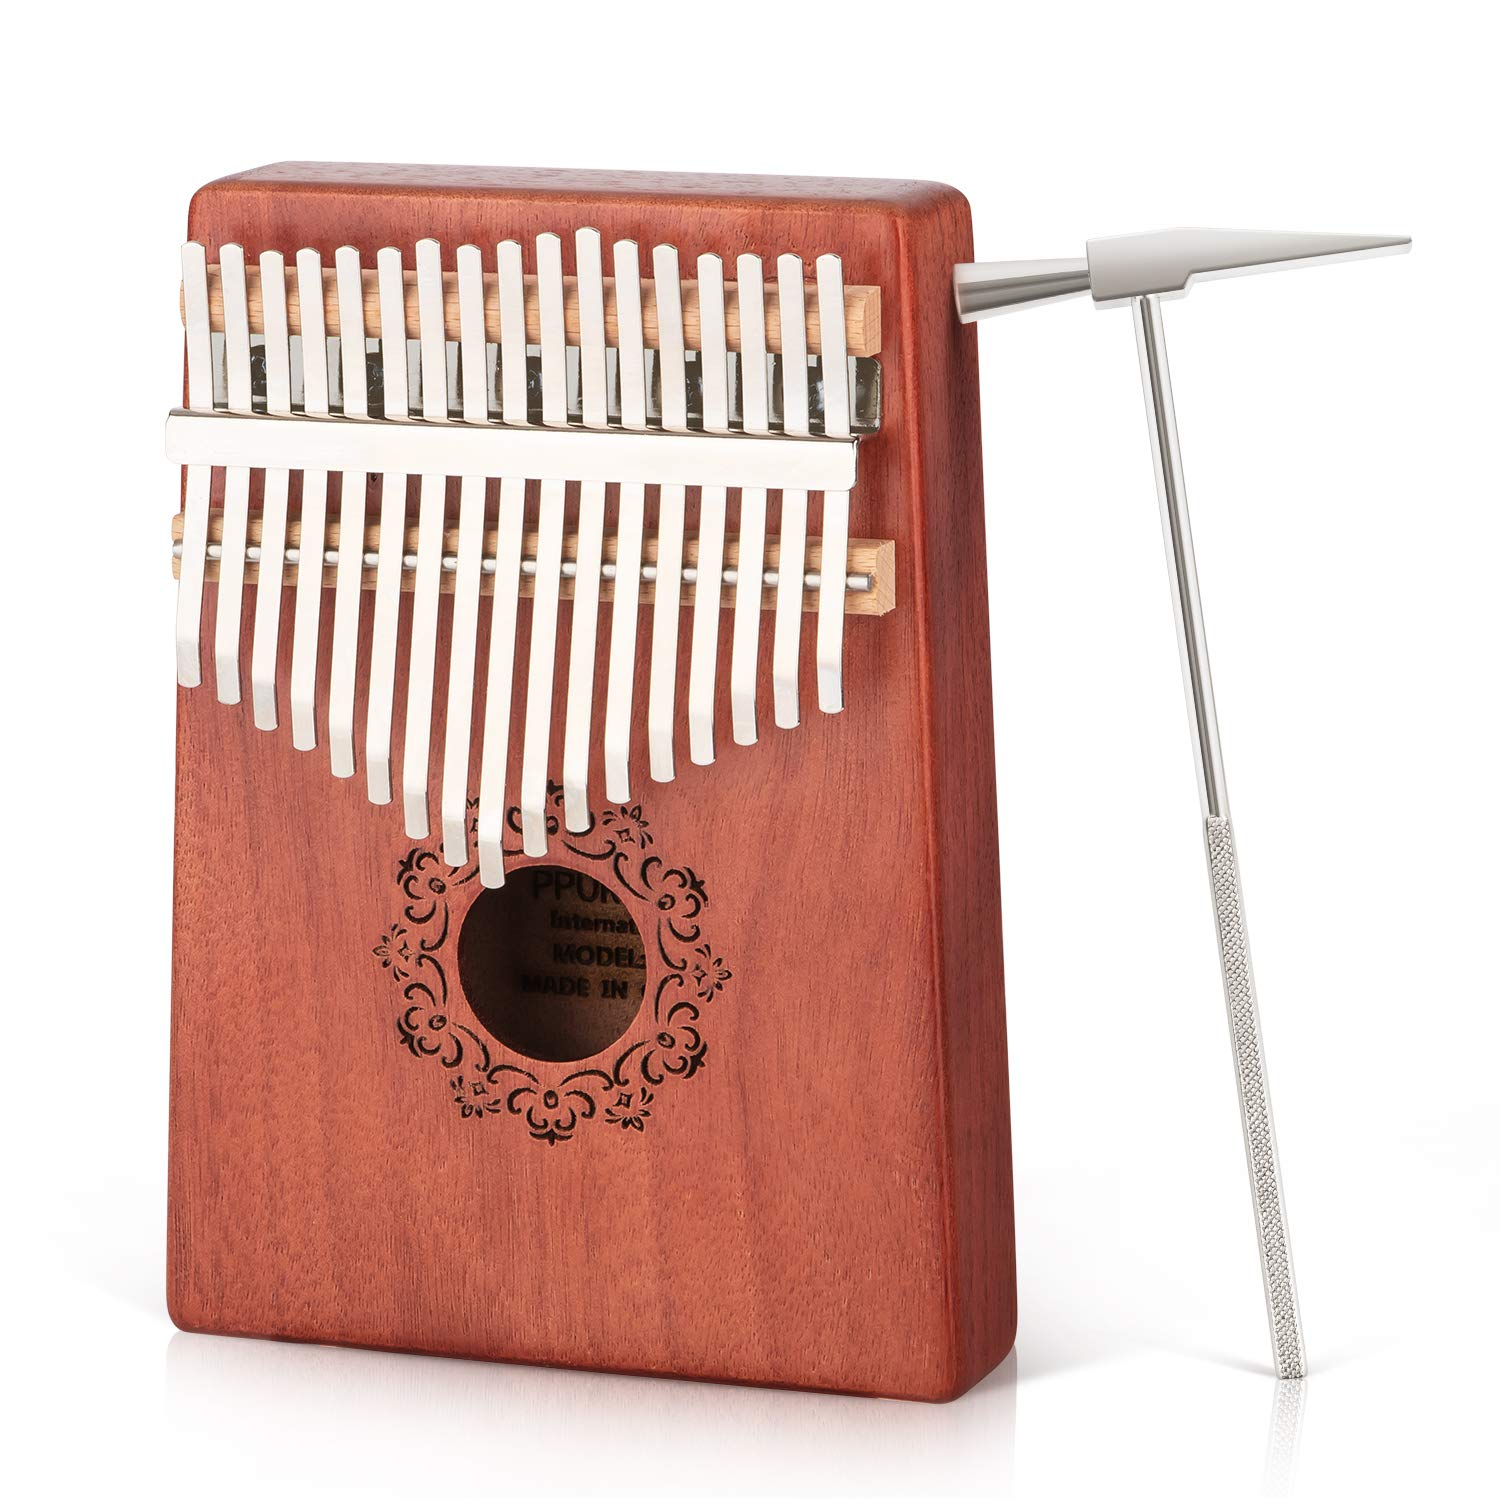 Kalimba 17 Keys Thumb Piano, Solid Finger Piano with Locking system, Instruction and Tune Hammer Solid Wood Mahogany Body